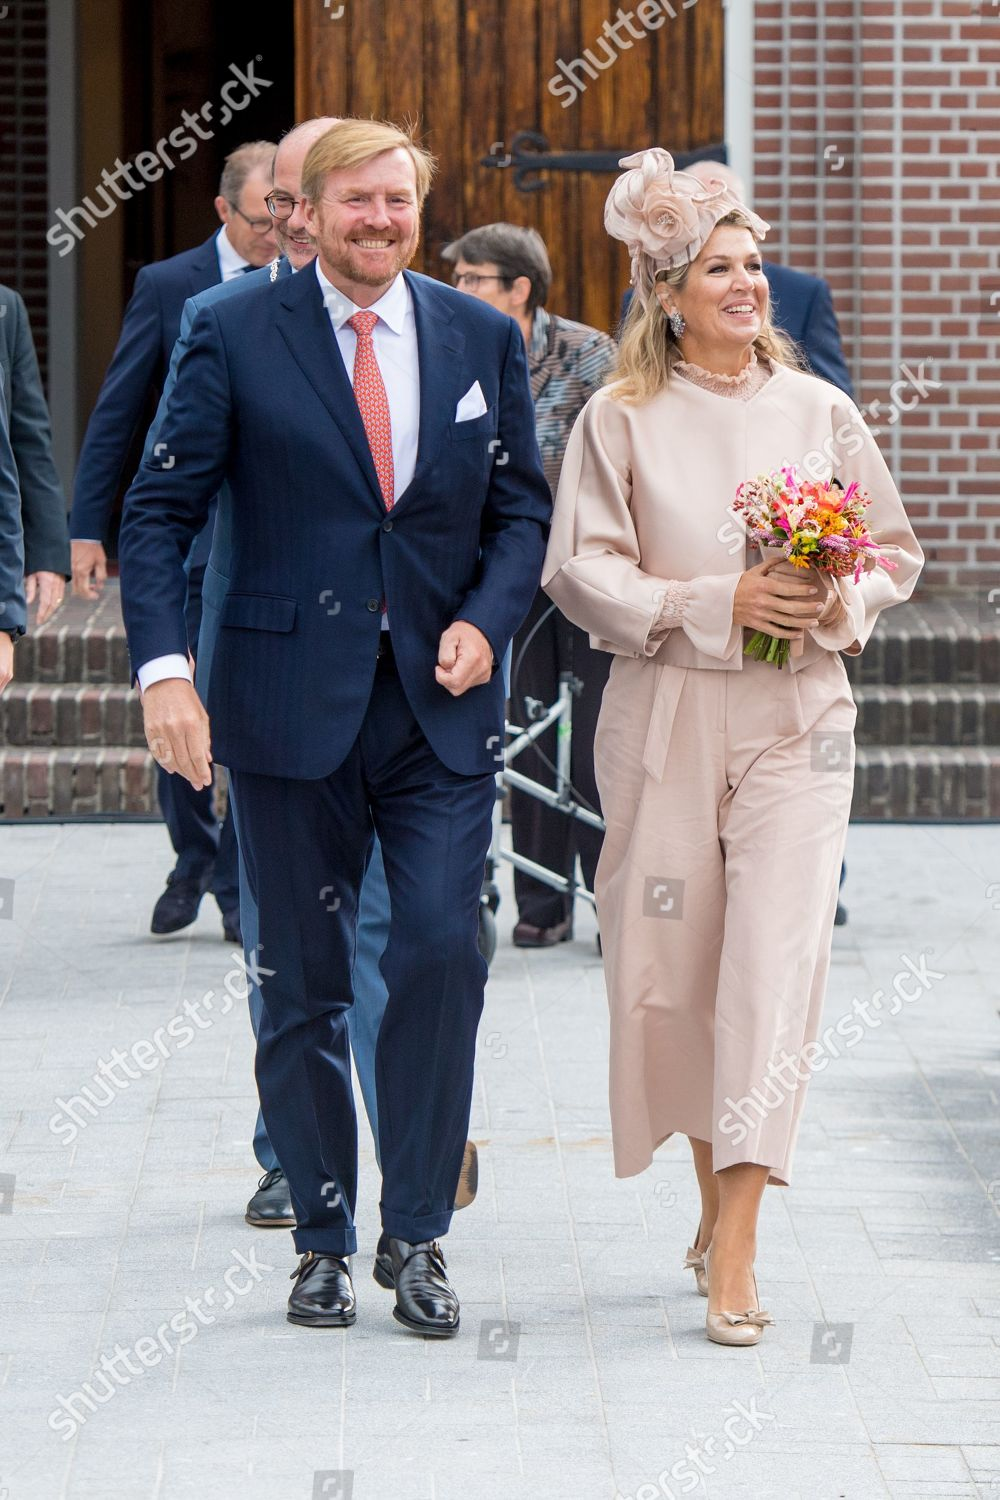 king-willem-alexander-and-queen-maxima-visit-to-south-west-drenthe-netherlands-shutterstock-editorial-10417139f.jpg